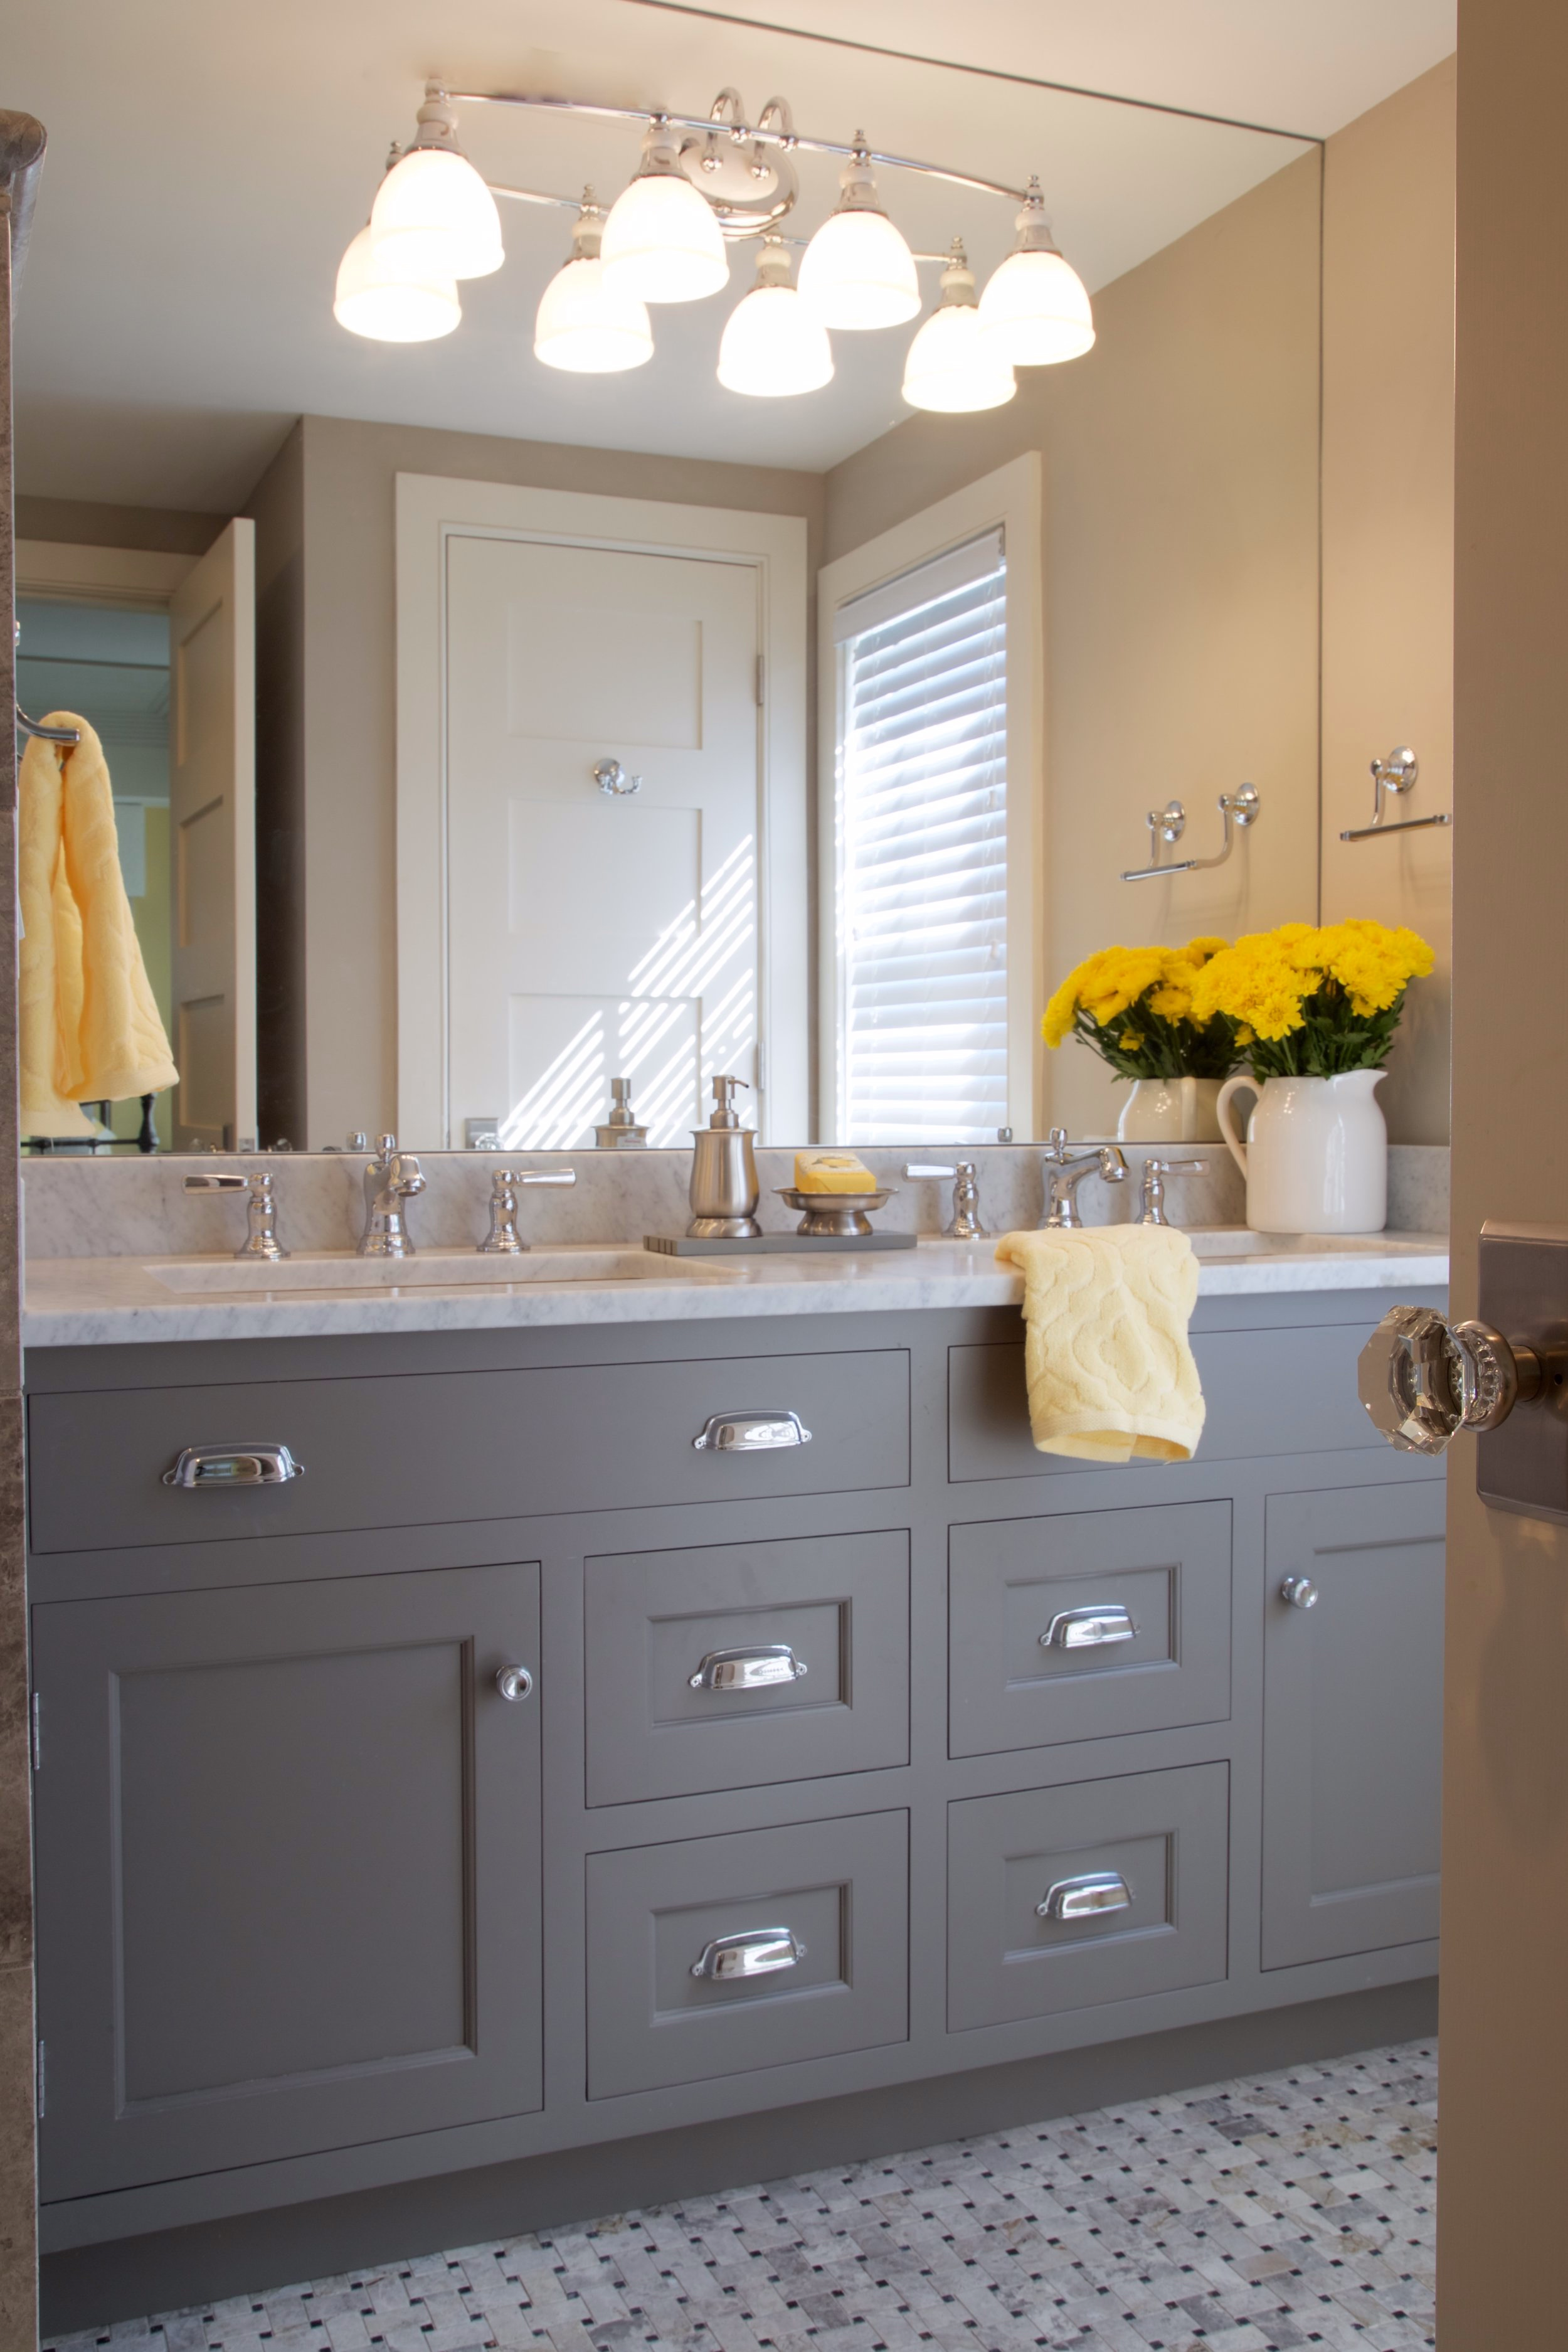 Modern Cottage - While spending summers at the beach these homeowners wanted modern bathroom style that blends seamlessly with rest of this coastal casual home.